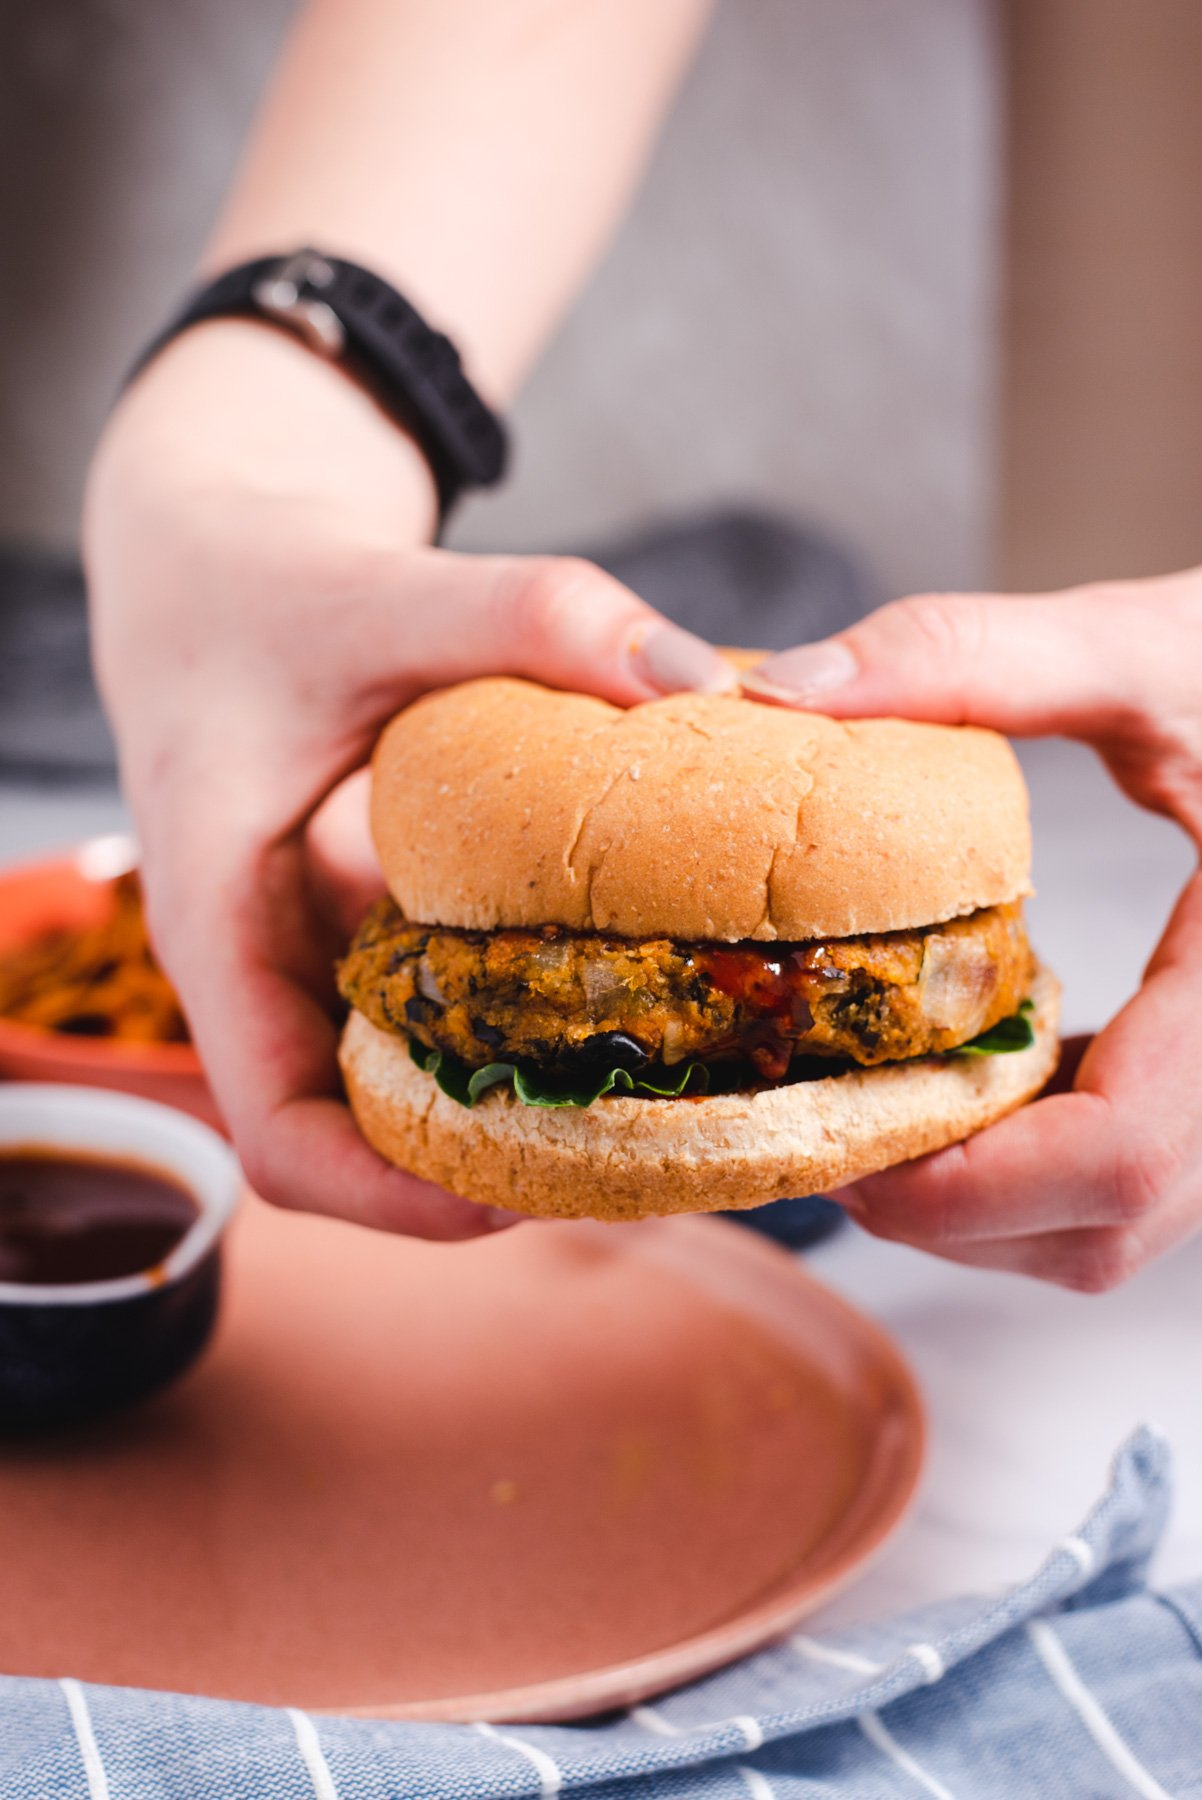 Two hands holding a sweet potato burger